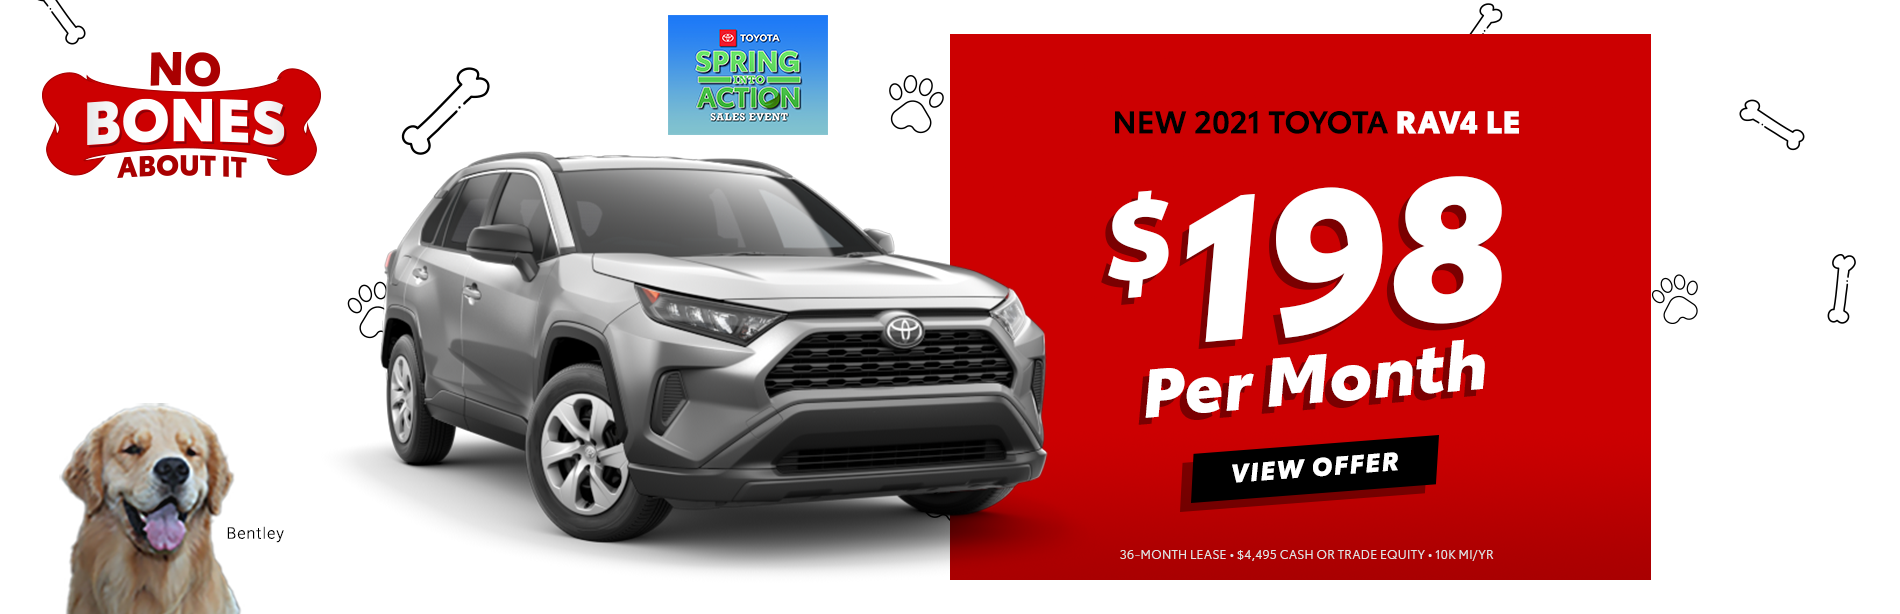 View Rochester Toyota Specials on new 2021 RAV4 select models